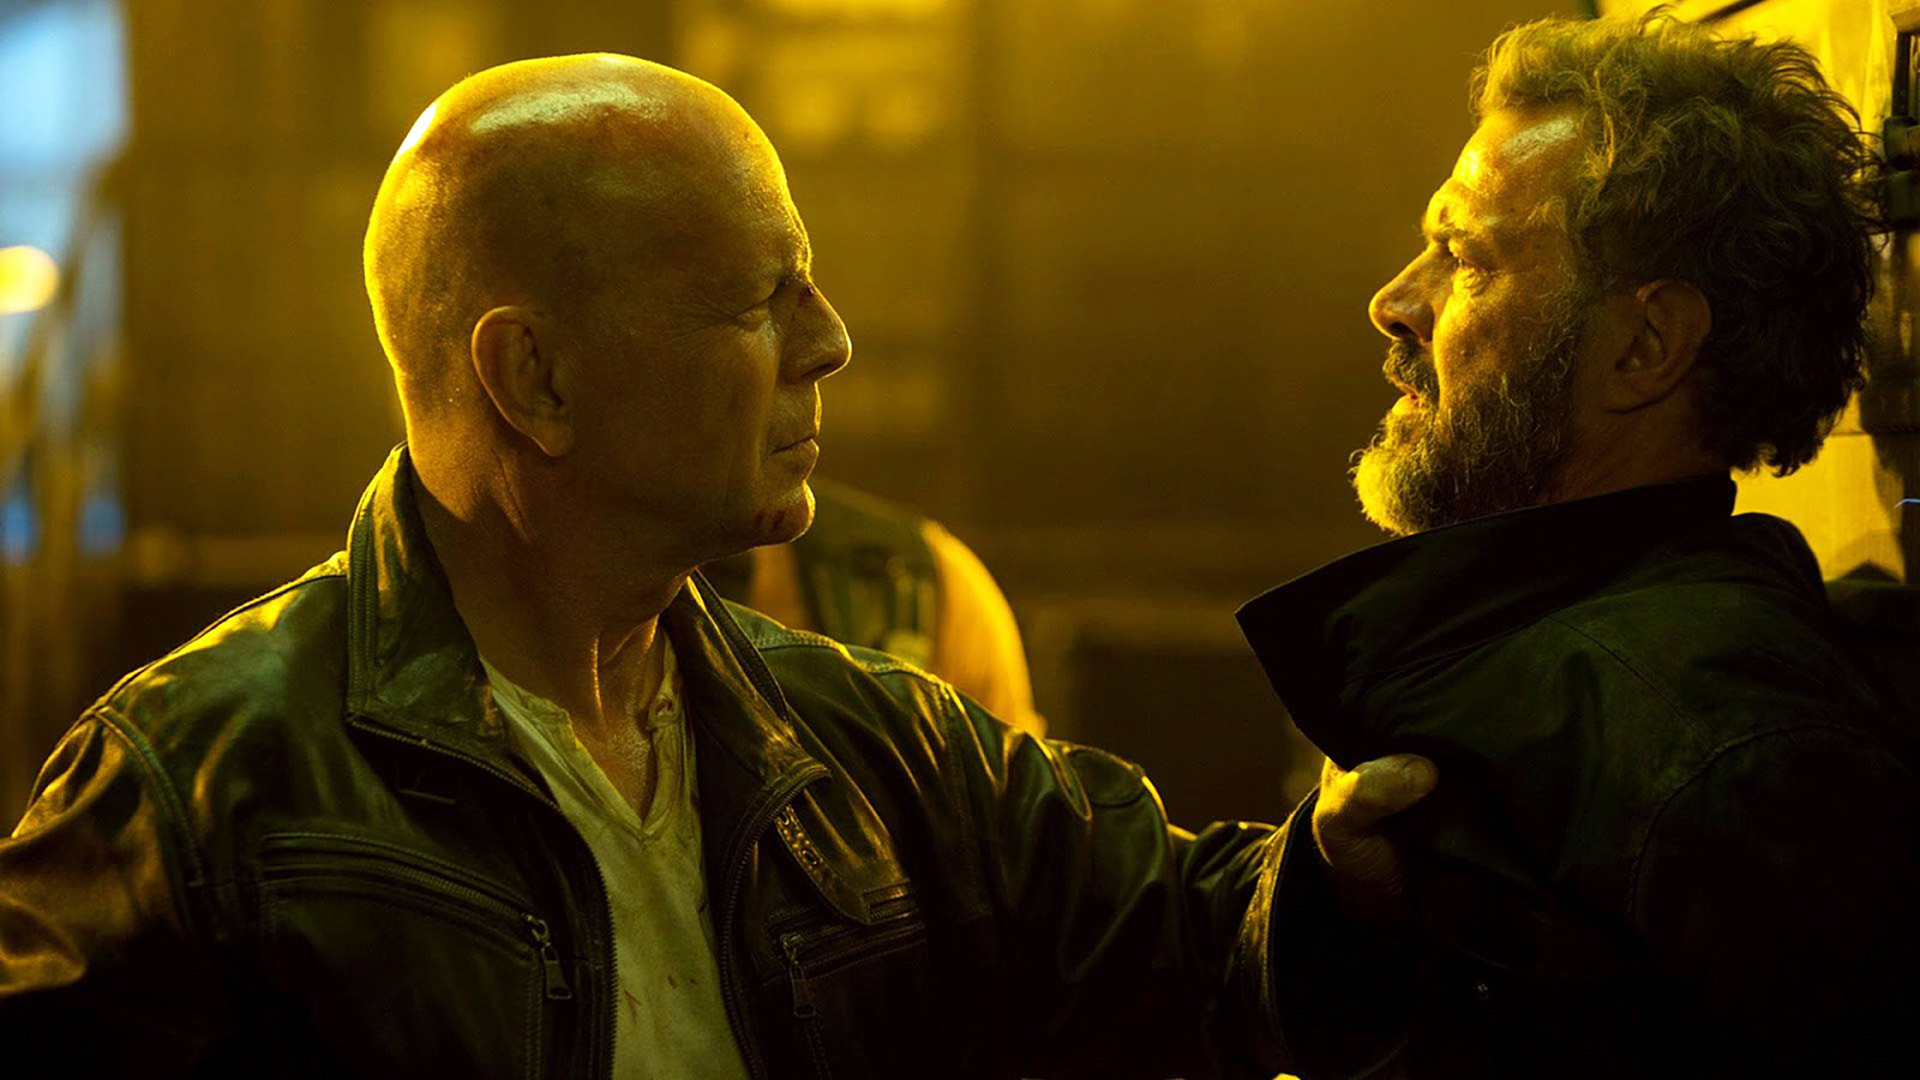 Yuri Komarov (right), A Good Day to Die Hard (2013, Die Hard film series)